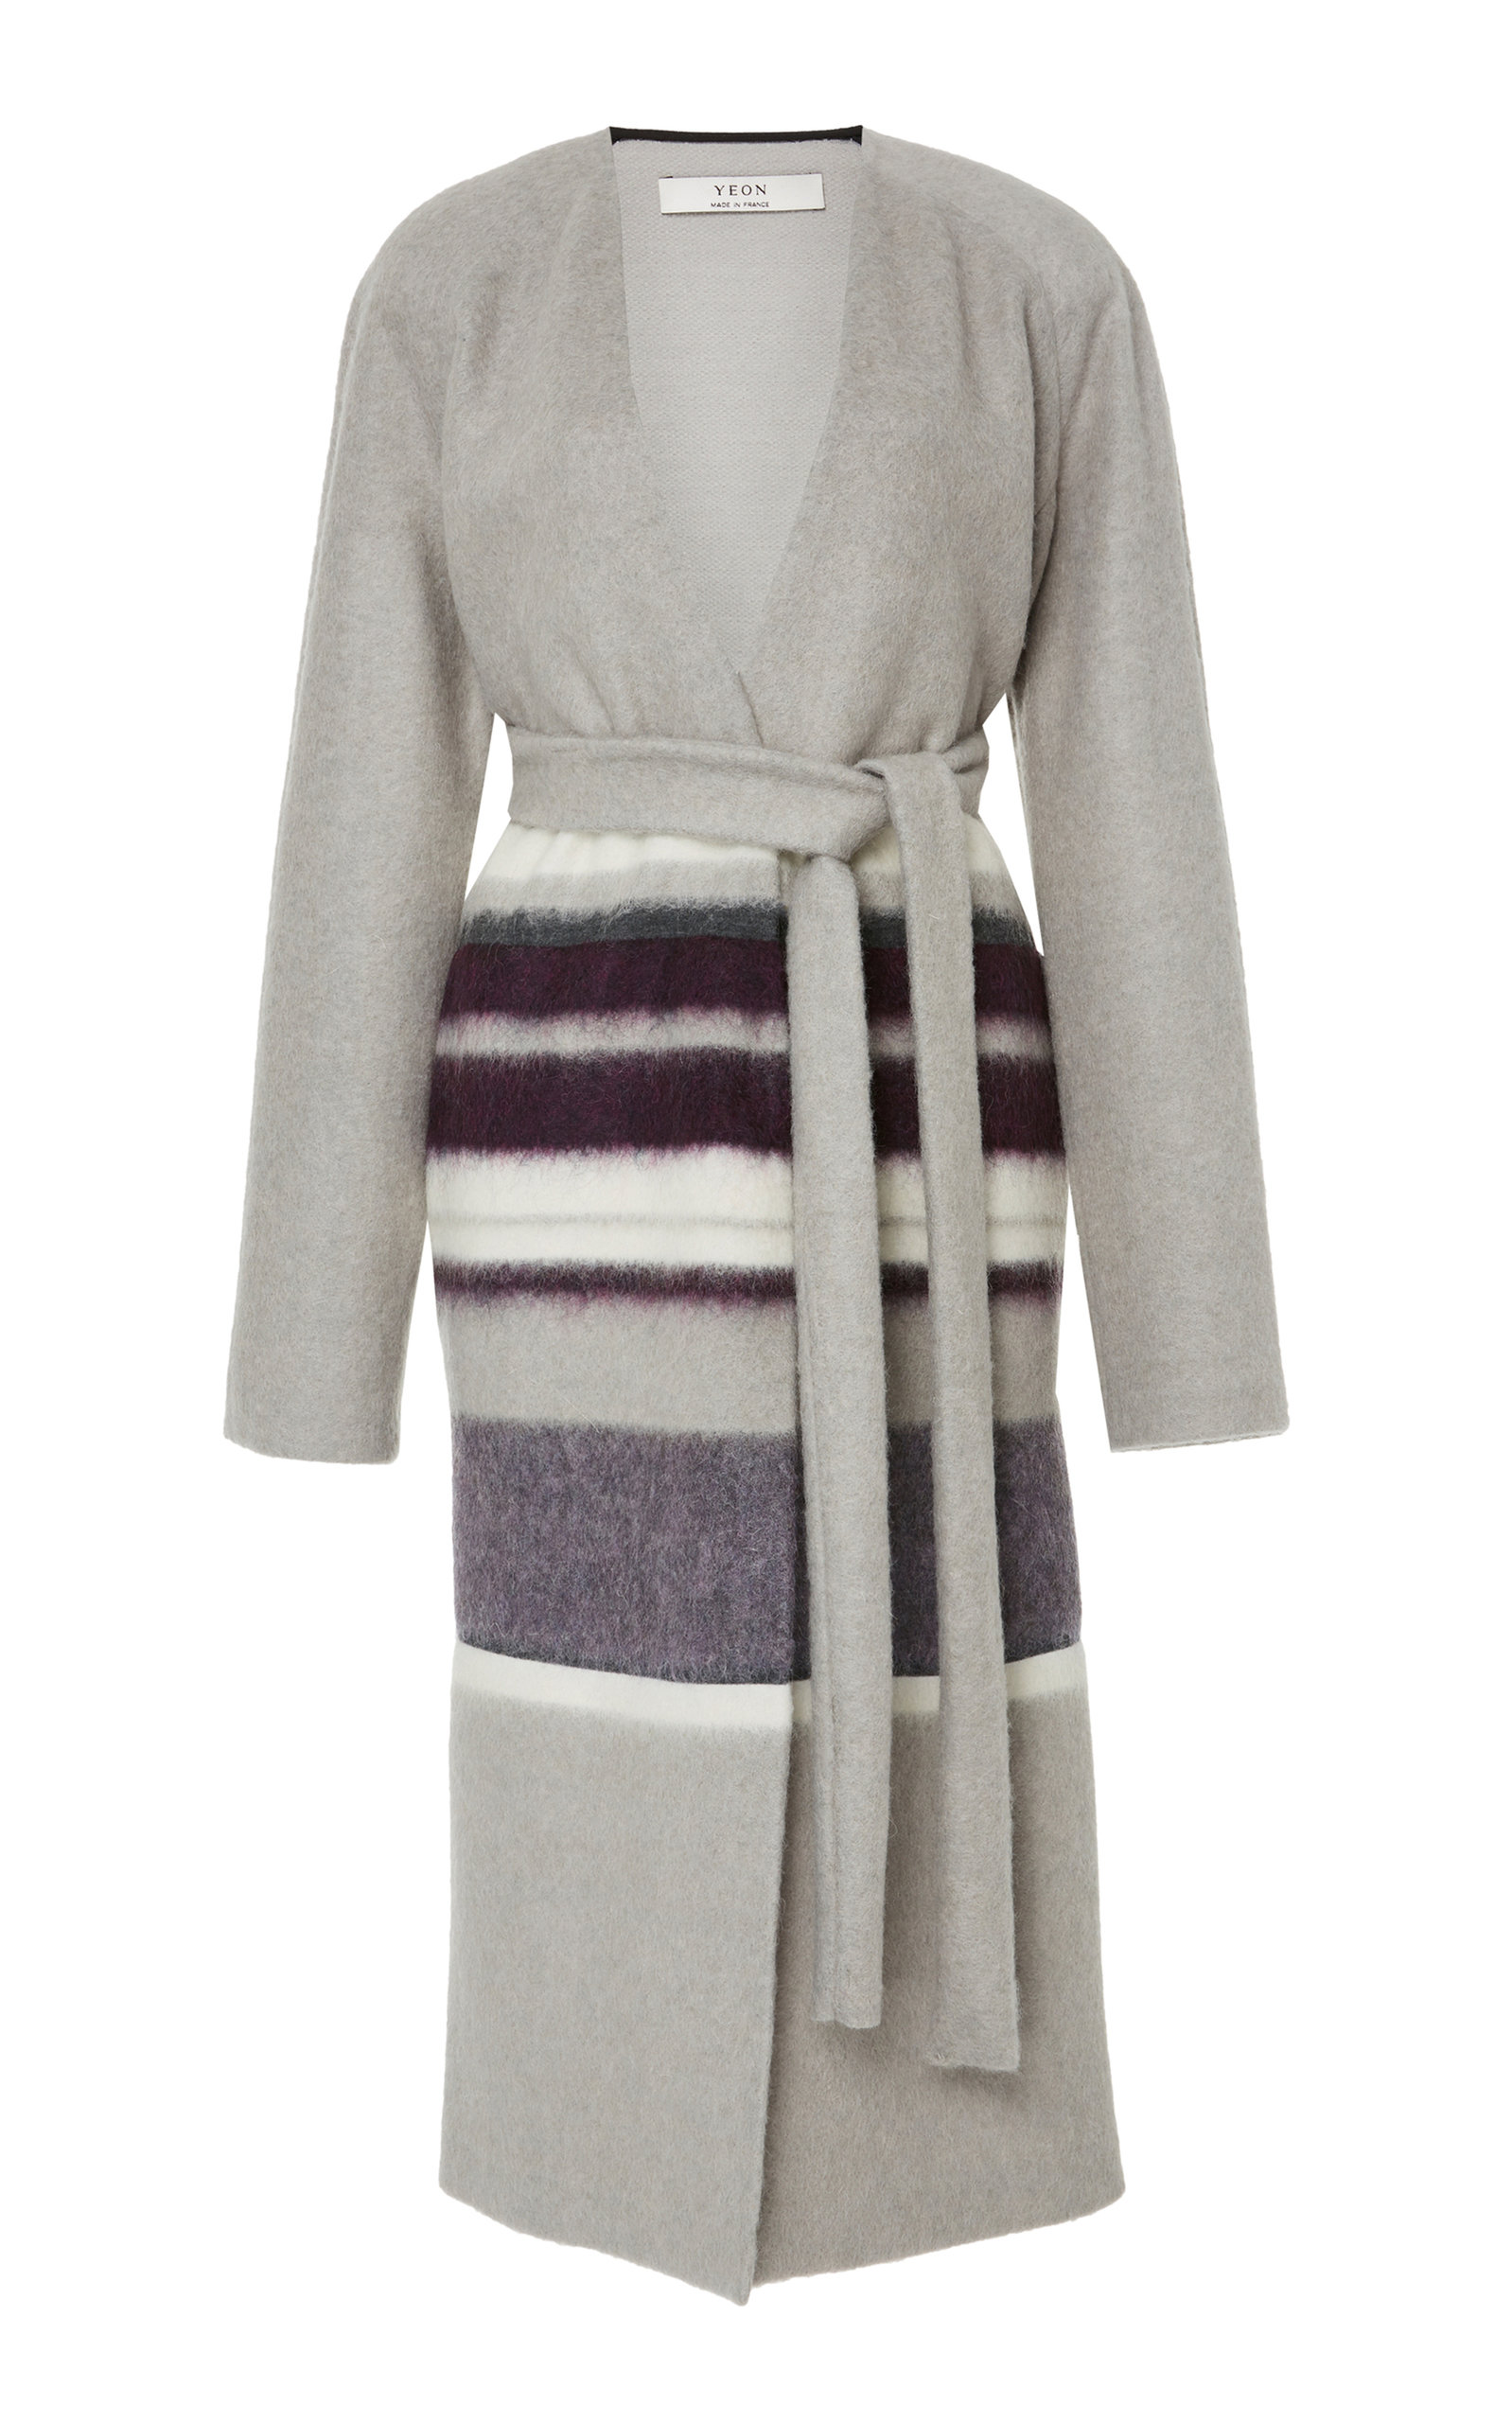 YEON M'O Exclusive Clio Striped Wool-Blend Coat in Grey